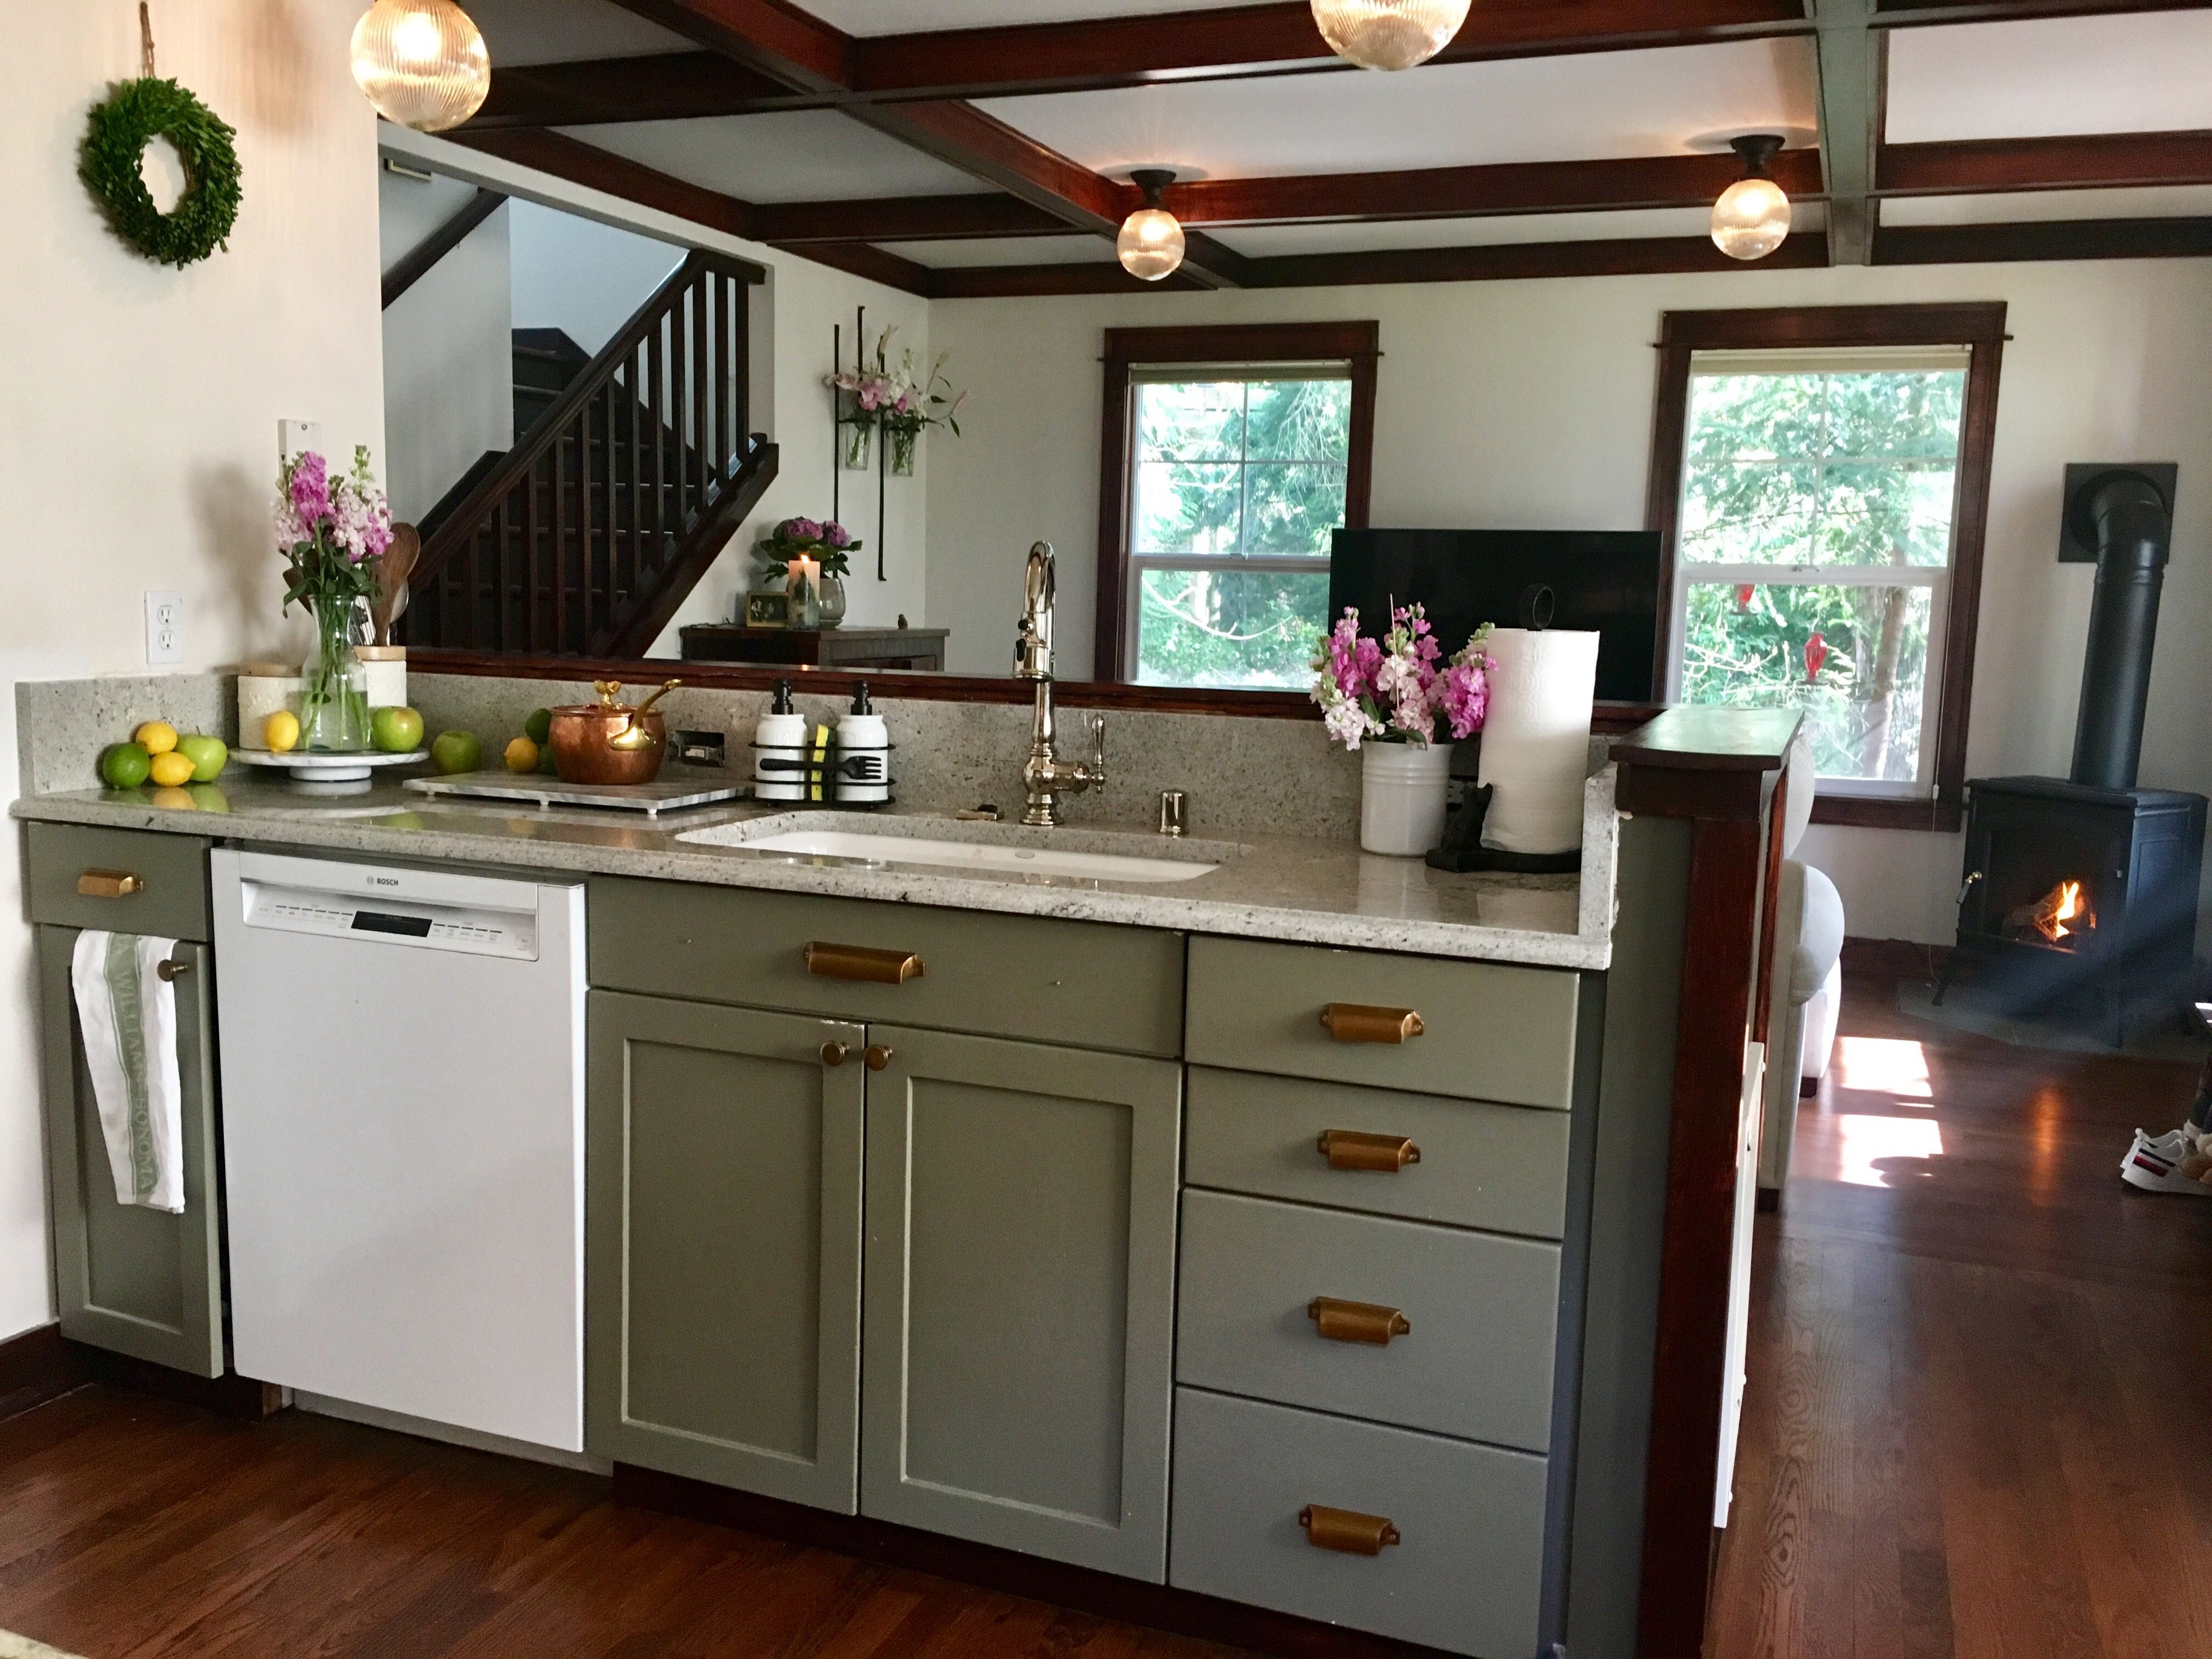 brass fixtures and a green kitchen compliment the natural green space surrounding this cottage on kitchen interior green id=25562